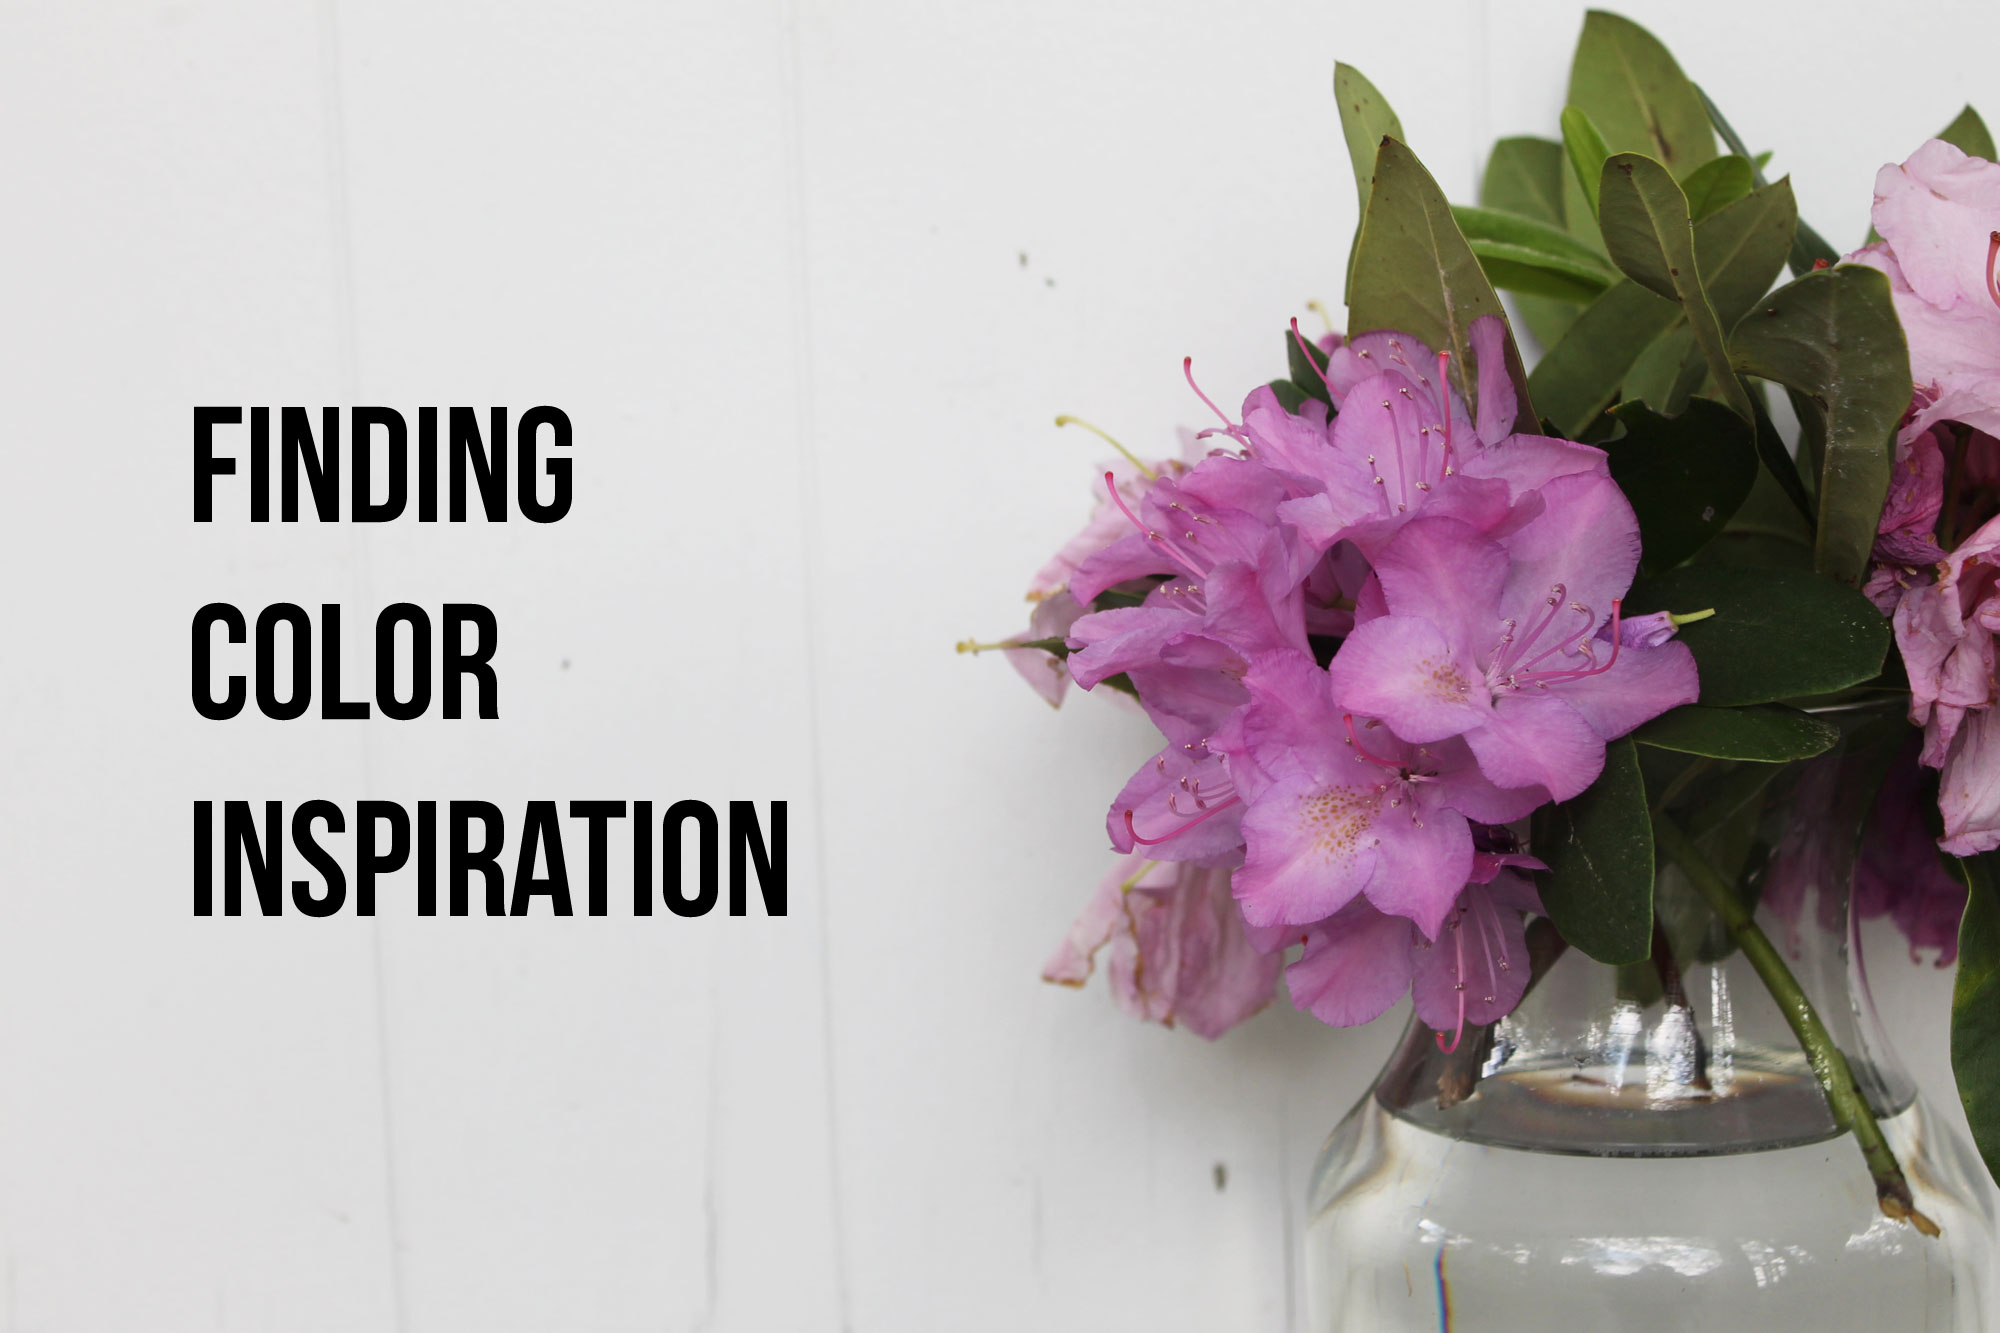 Finding color inspiration